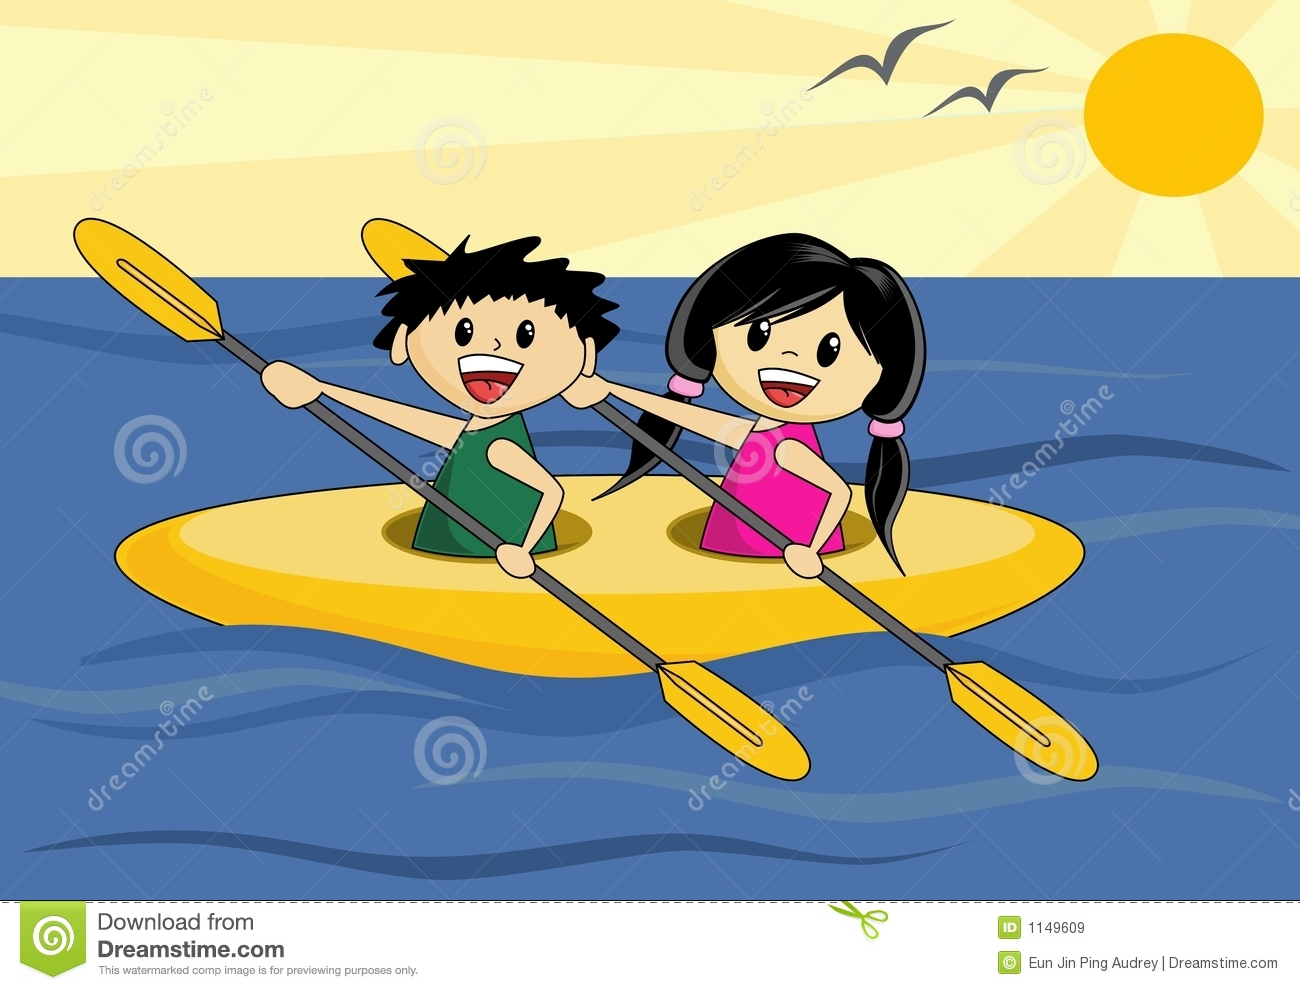 Boy And Girl In Canoe Royalty Free Stock Images - Image: 1149609